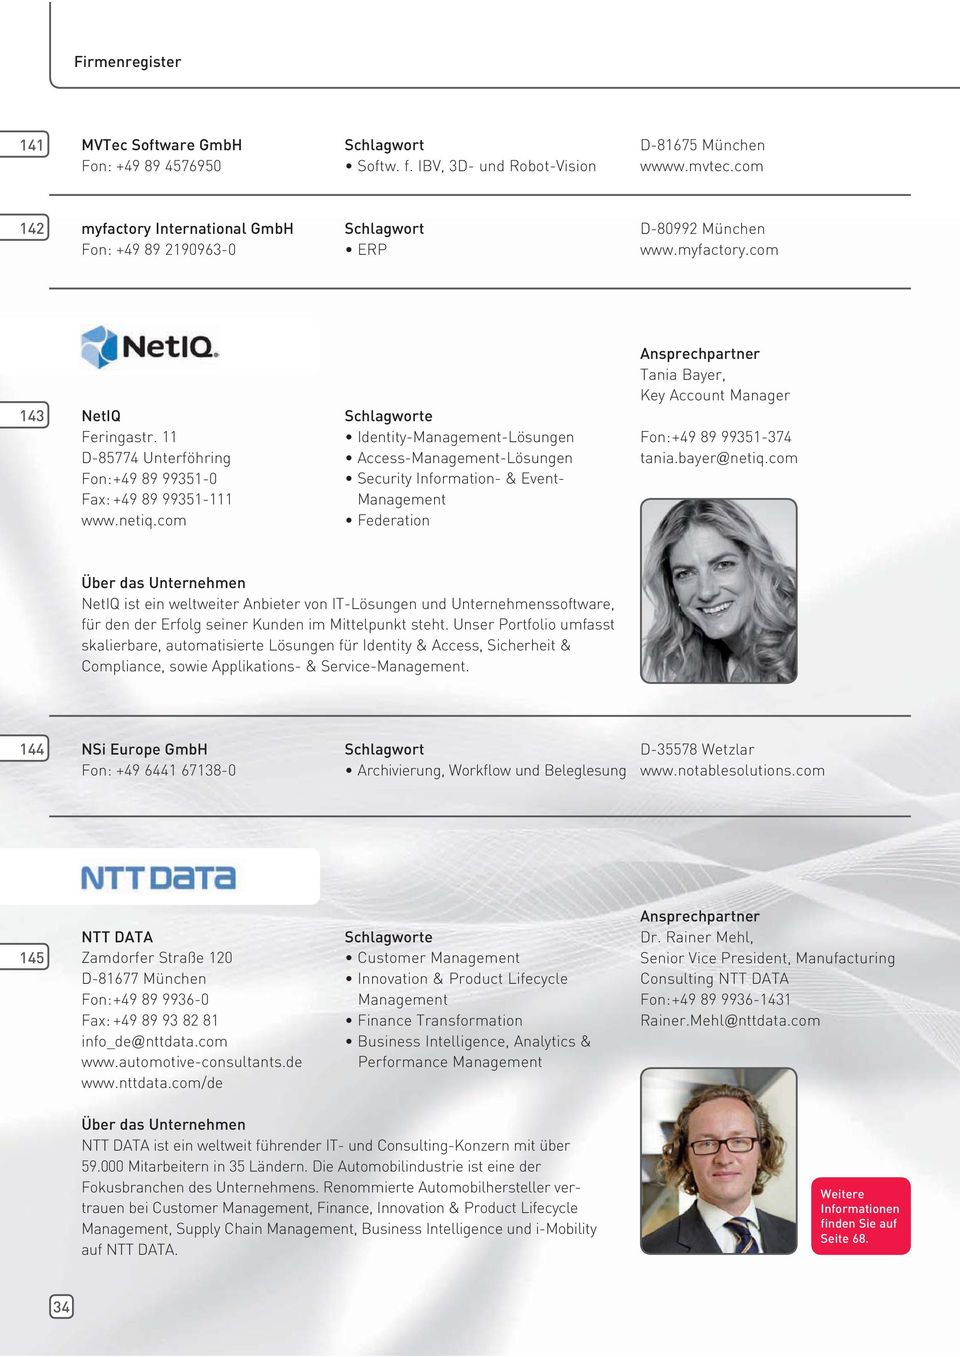 netiq.com Identity-Management-Lösungen Access-Management-Lösungen Security Information- & Event- Management Federation Tania Bayer, Key Account Manager Fon: +49 89 99351-374 tania.bayer@netiq.